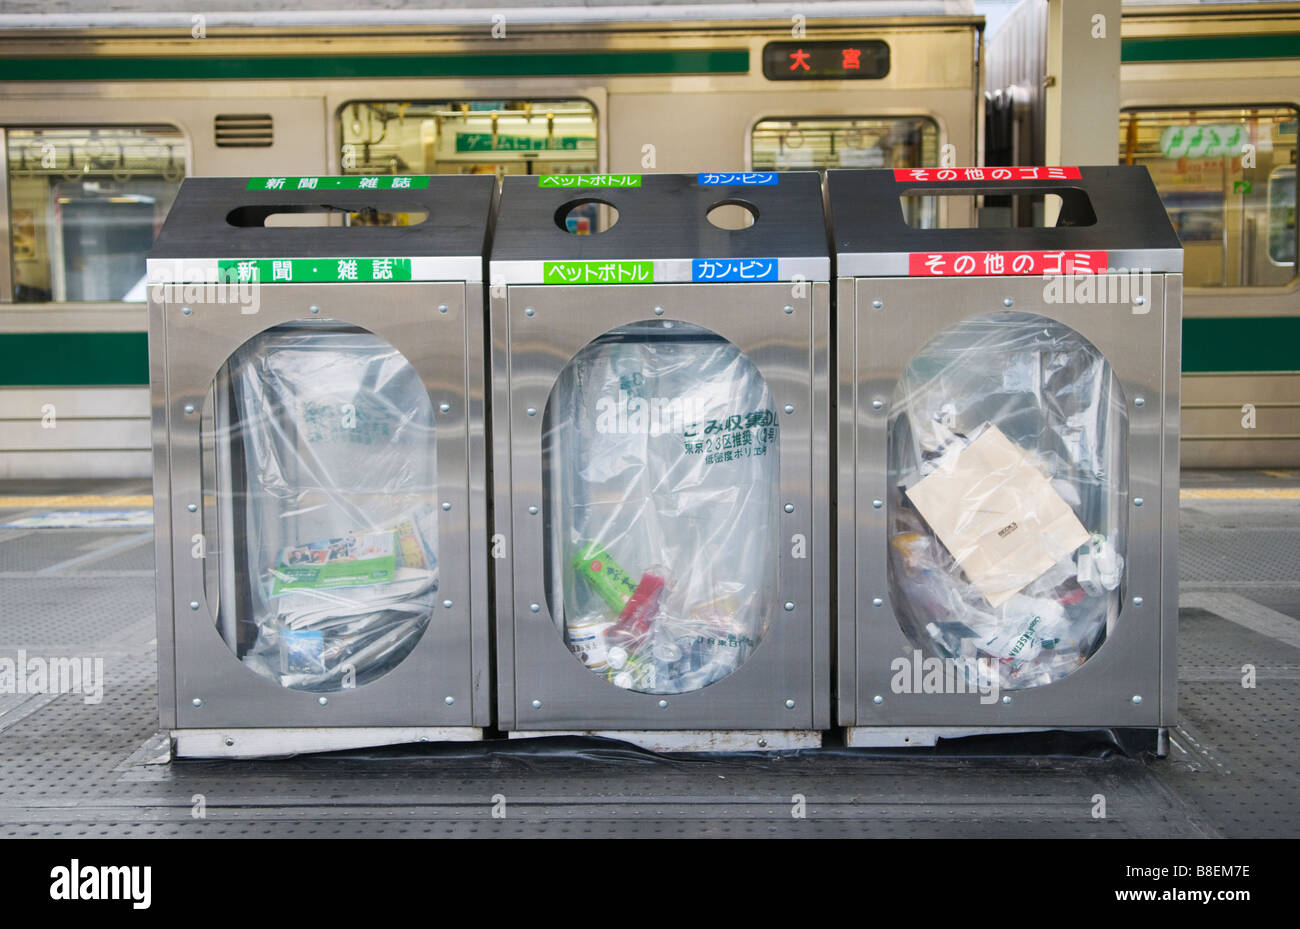 Recycling bins on a train station platform Tokyo Japan Stock Photo